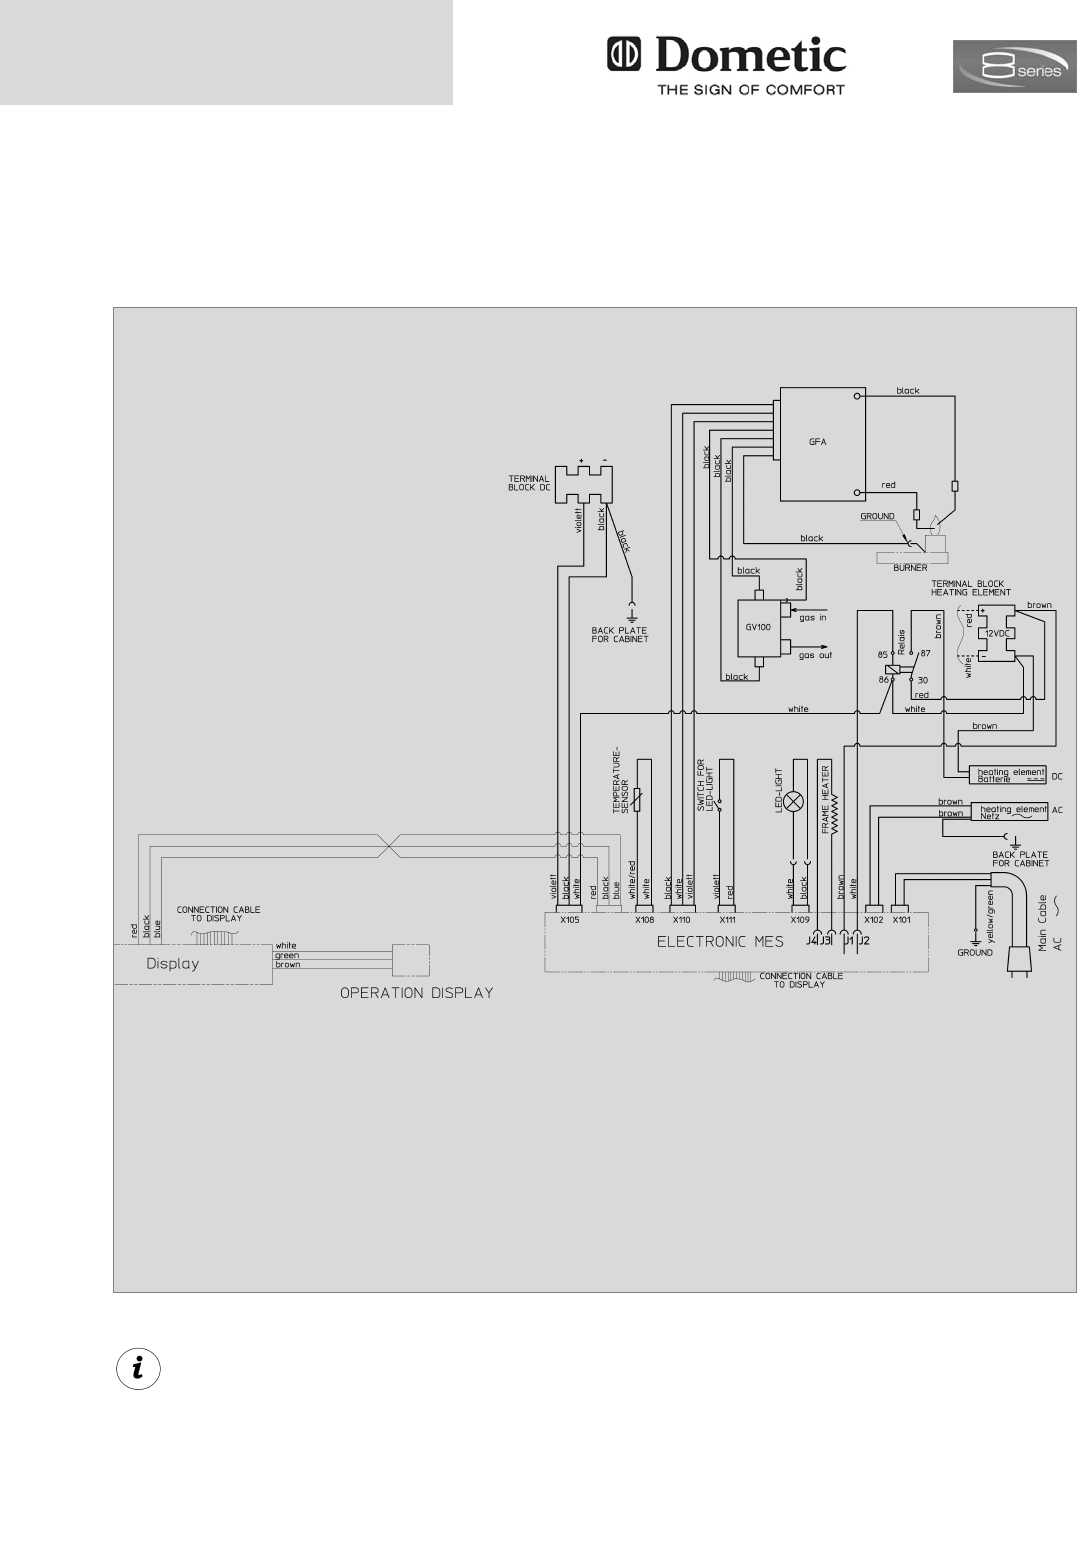 01e2568a 3535 4d87 acf7 e9ce87d7e0dc bg14?resize\\\\\\\=665%2C952 thetford macerator solenoid wiring diagram,macerator \u2022 indy500 co  at gsmx.co